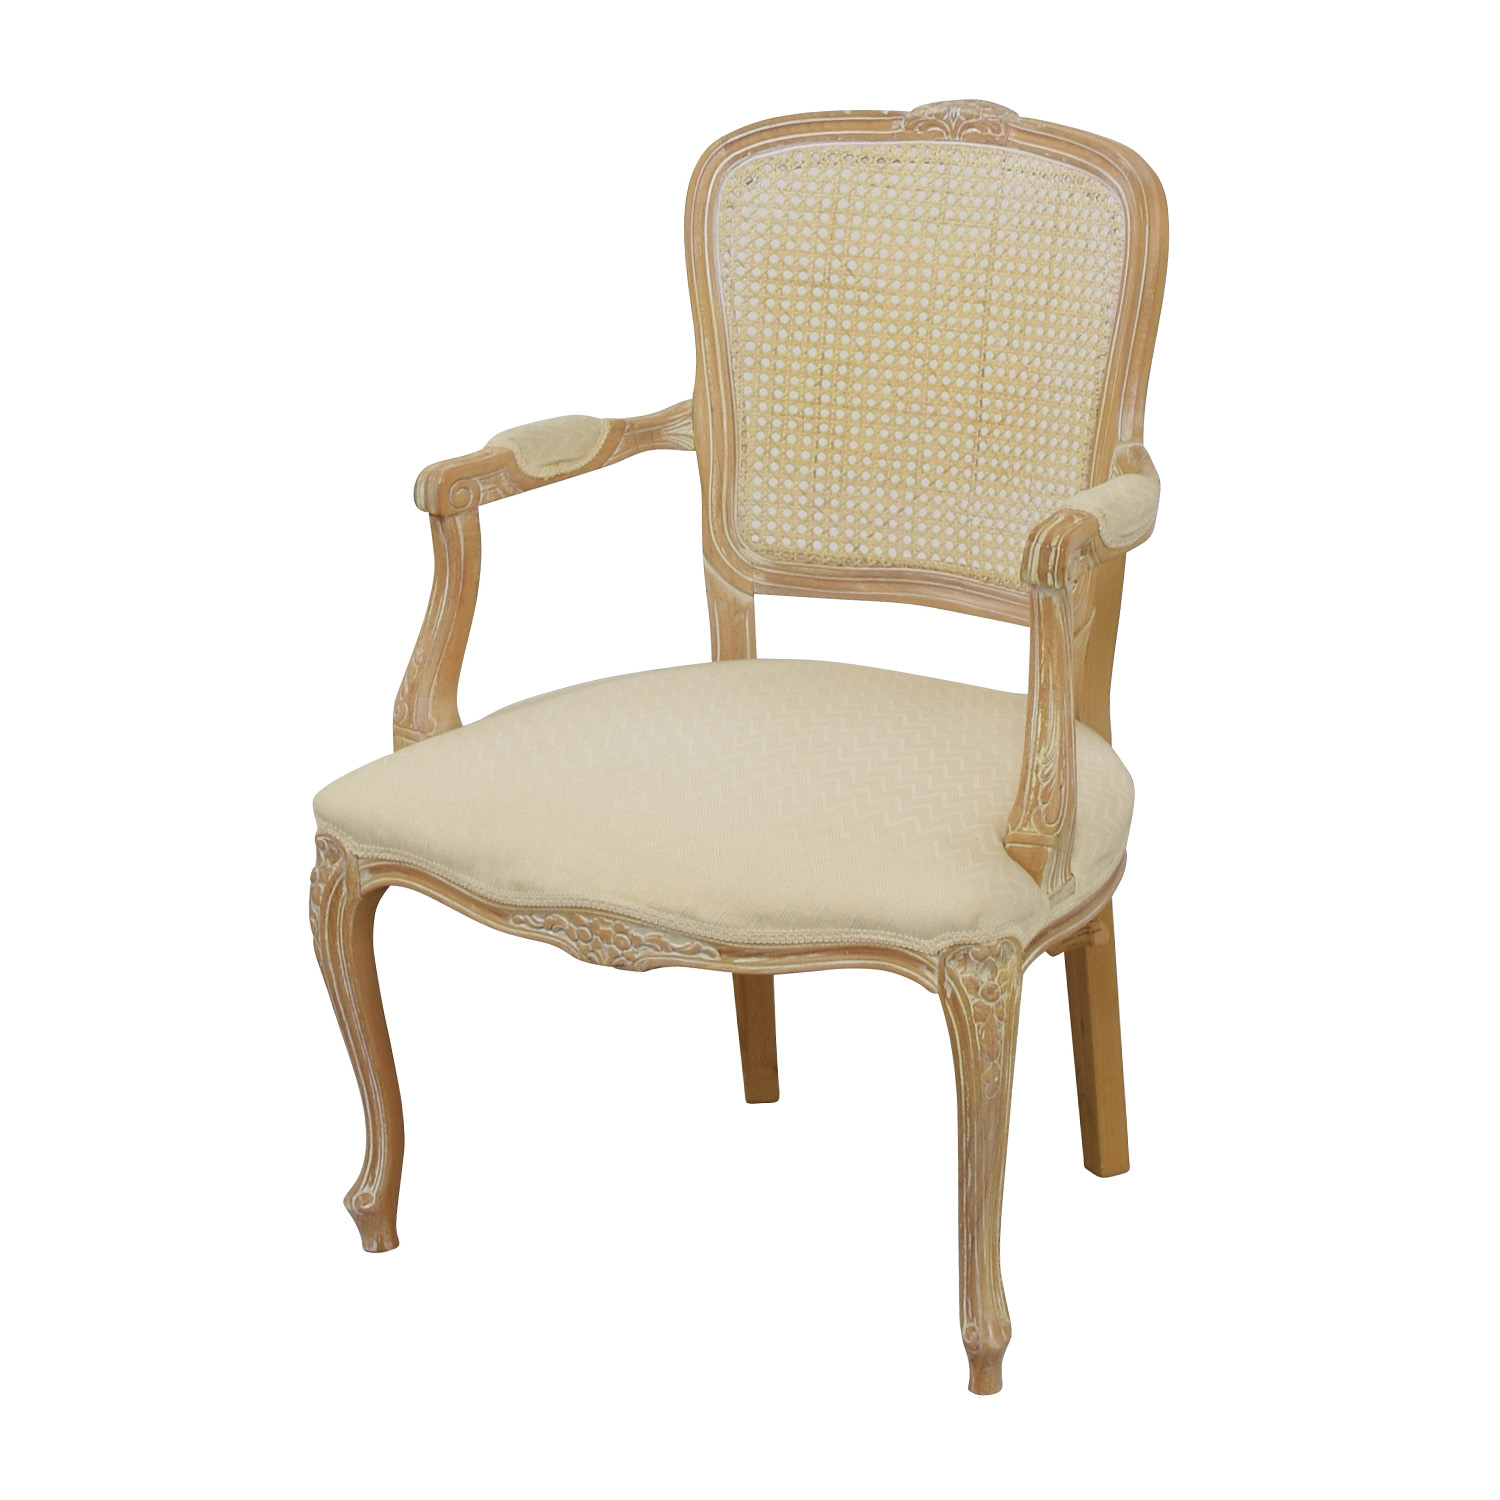 stool chair second hand how much does a chairlift weigh 68 off link taylor french provincial creme